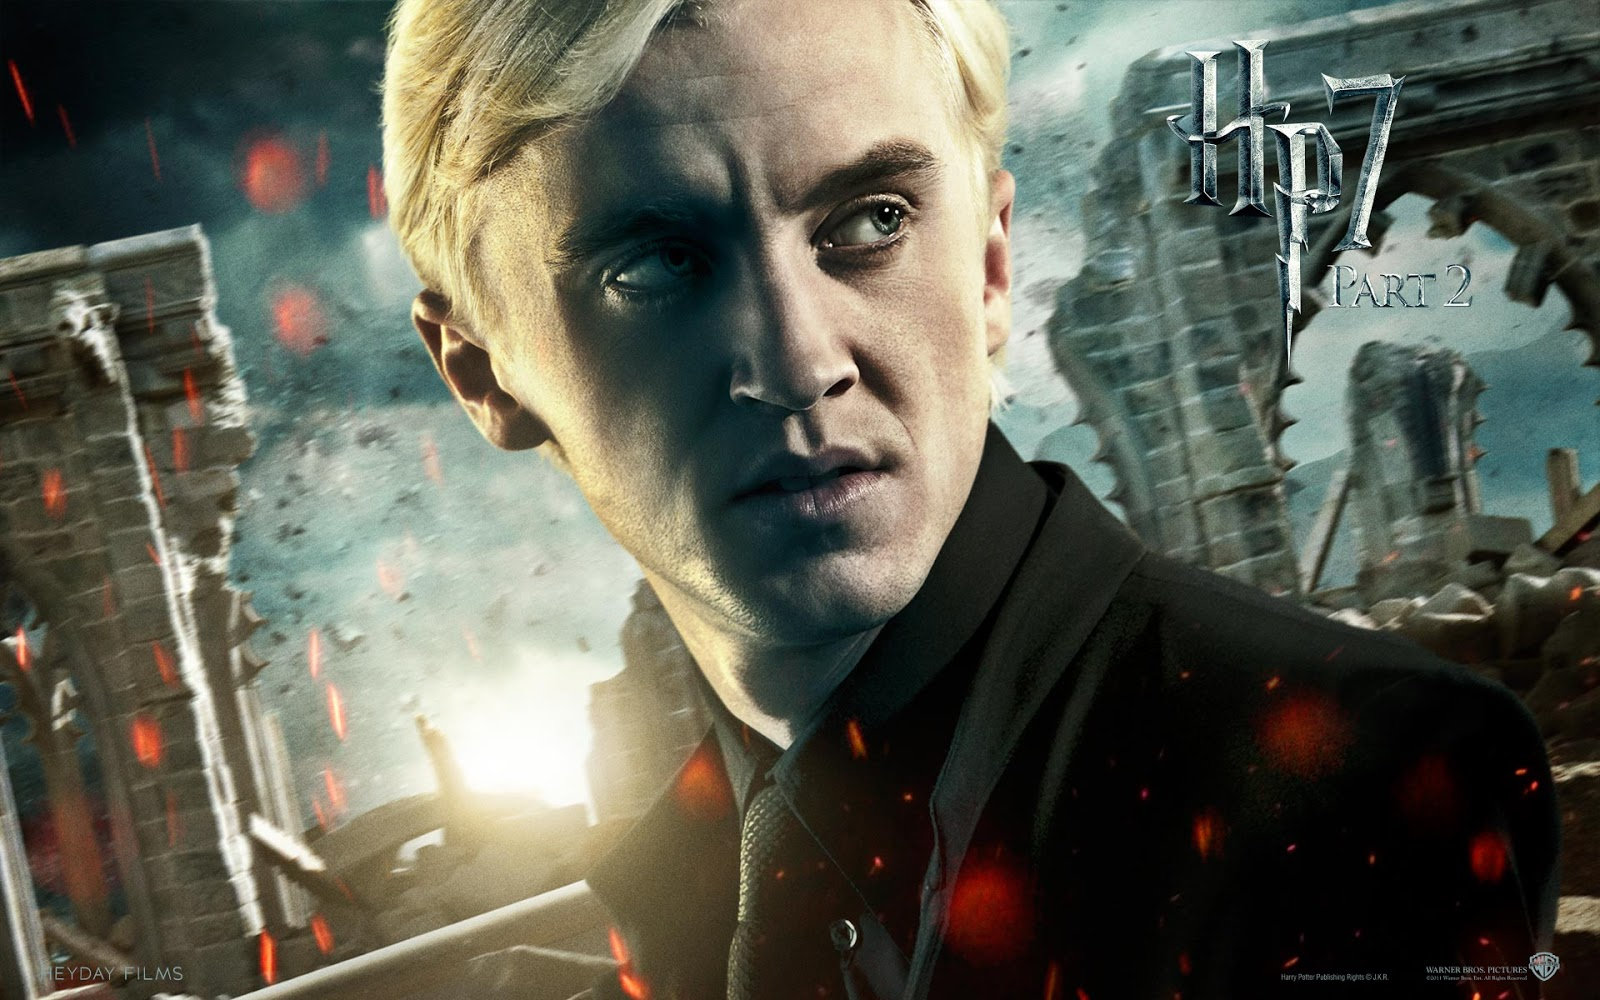 Harry Potter 7 Wallpaper High Definition